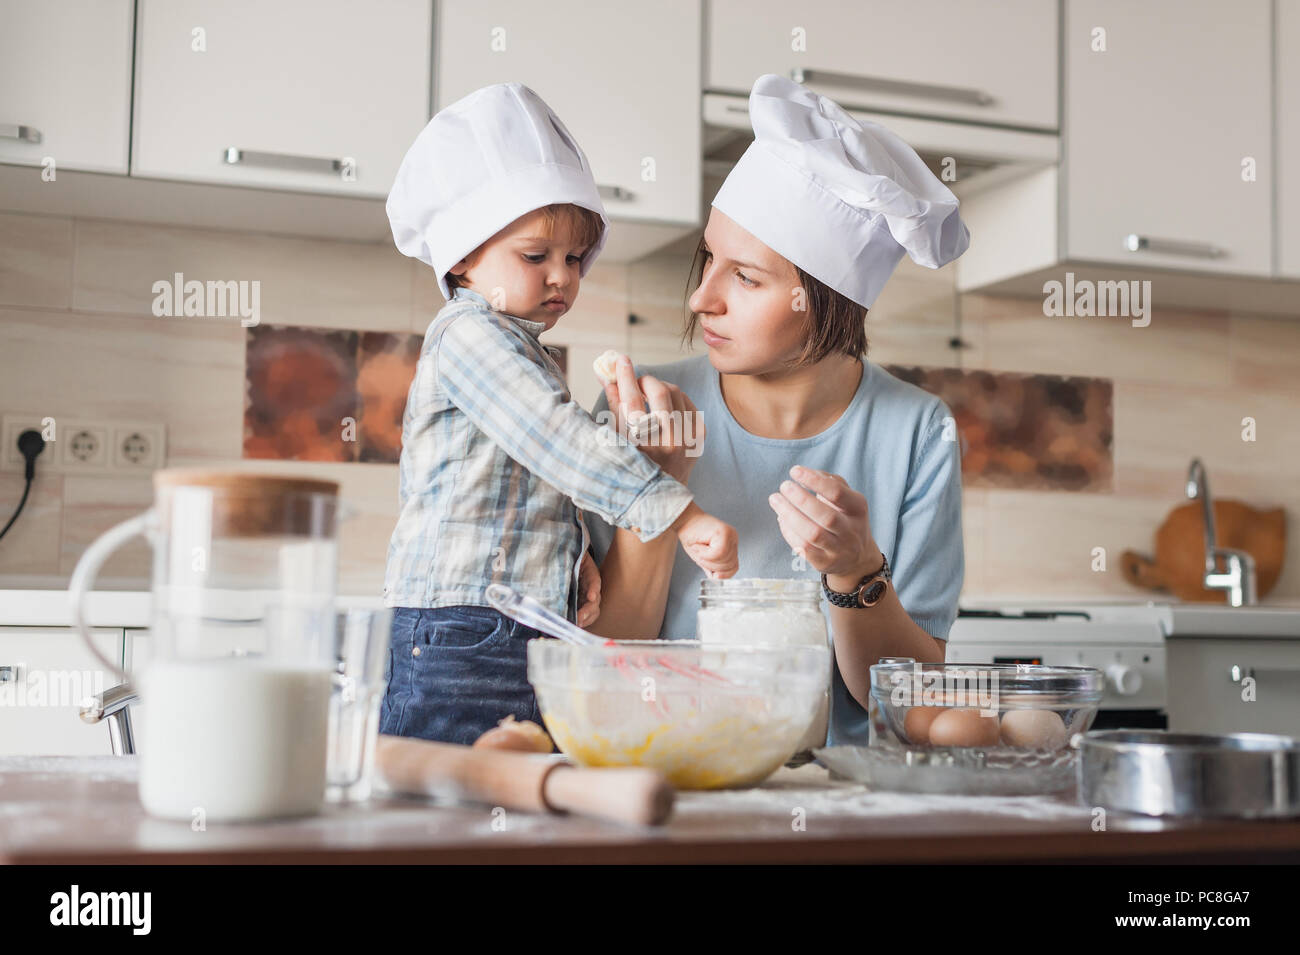 mother teaching her child how to prepare dough at kitchen - Stock Image